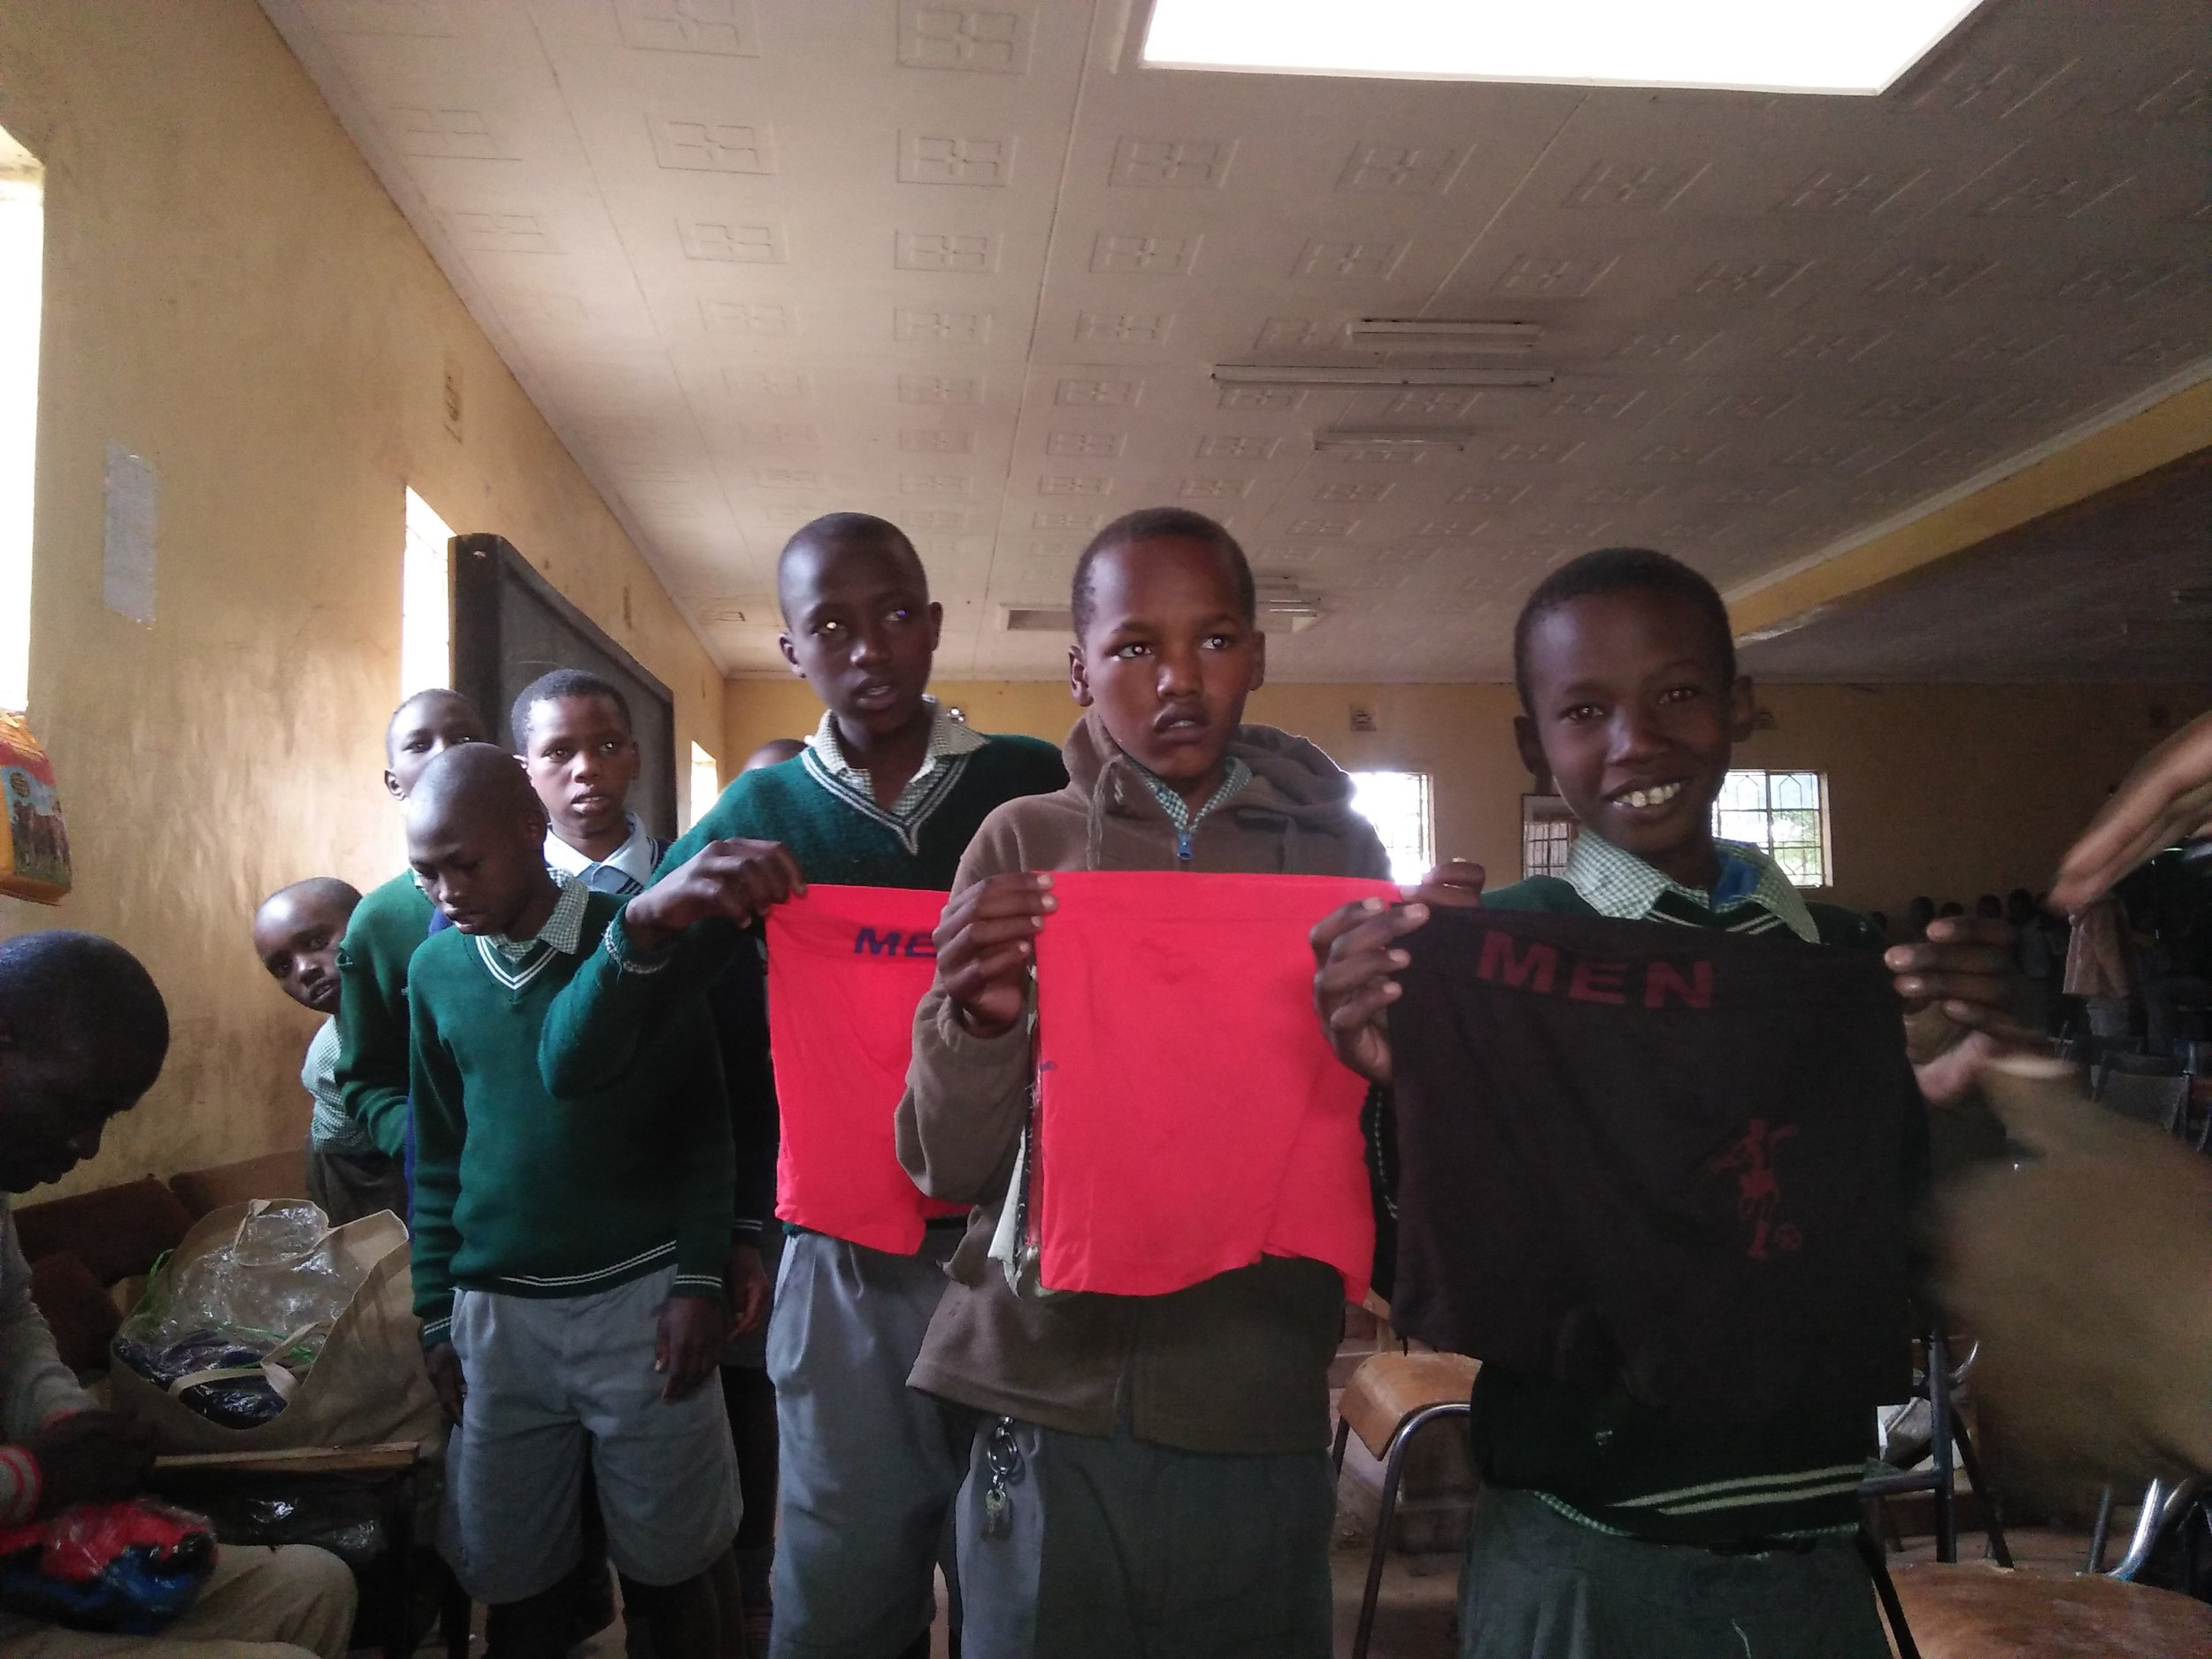 Standing With Boys donating underwear